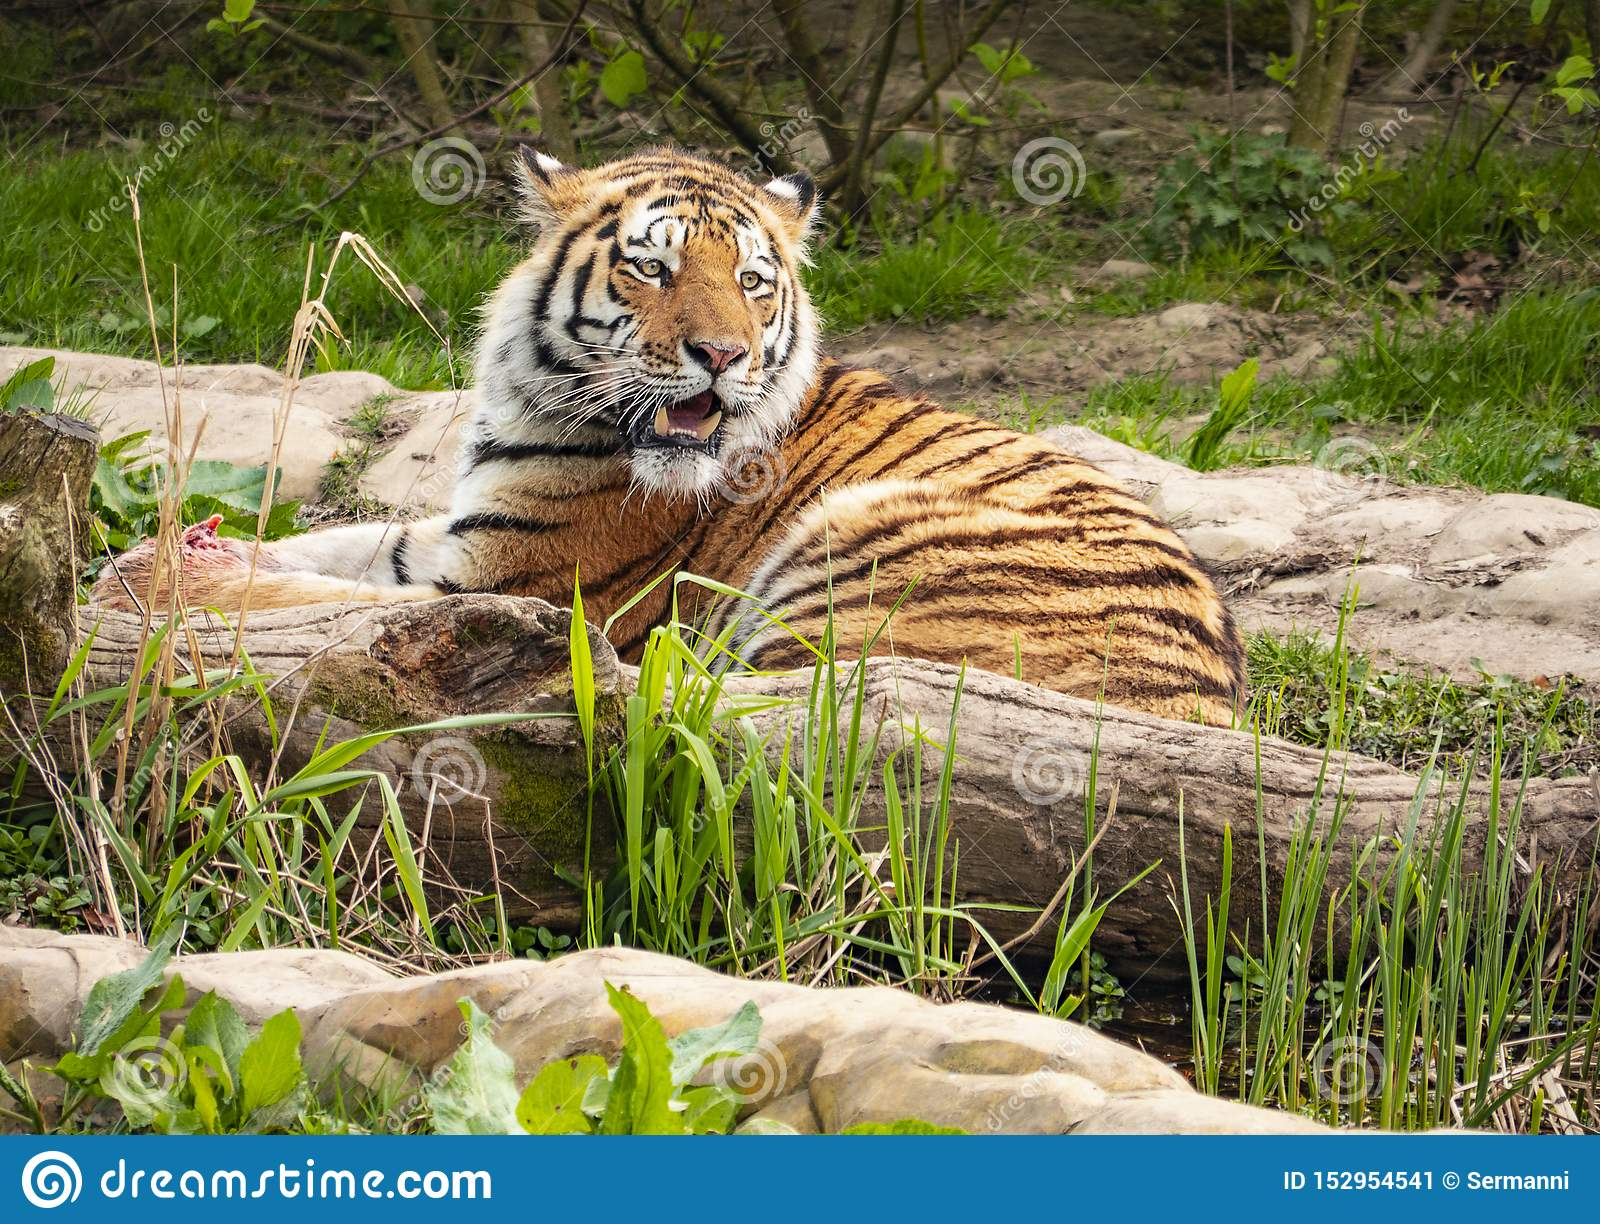 A tiger scans its territory